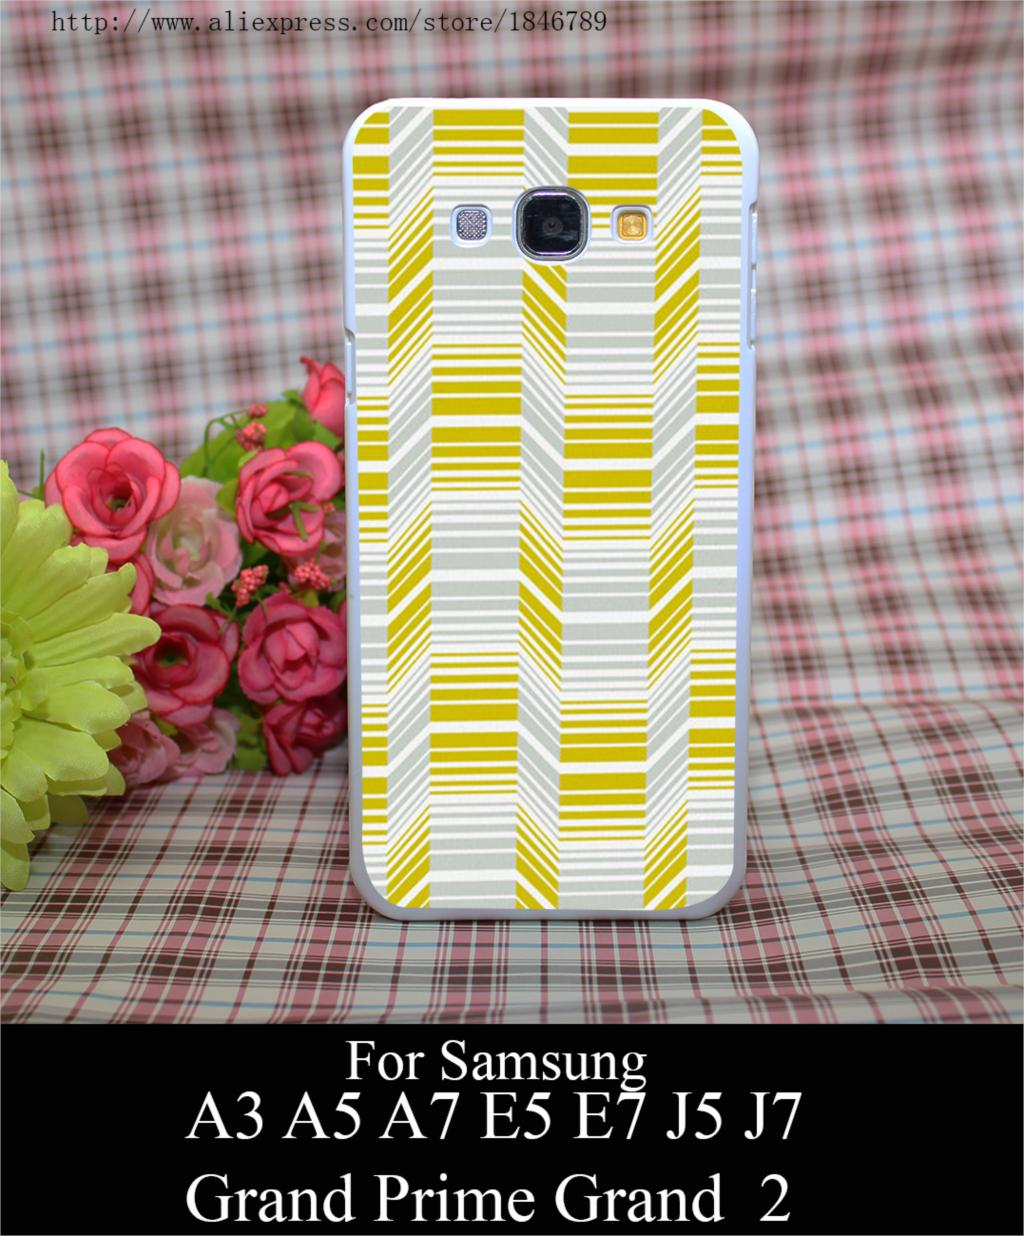 95635W Delineate Citron Style White Hard Case Cover for Samsung A3 A5 A7 A8 E5 E7 J5 J7 Grand Prime G530 Grand 2(China (Mainland))